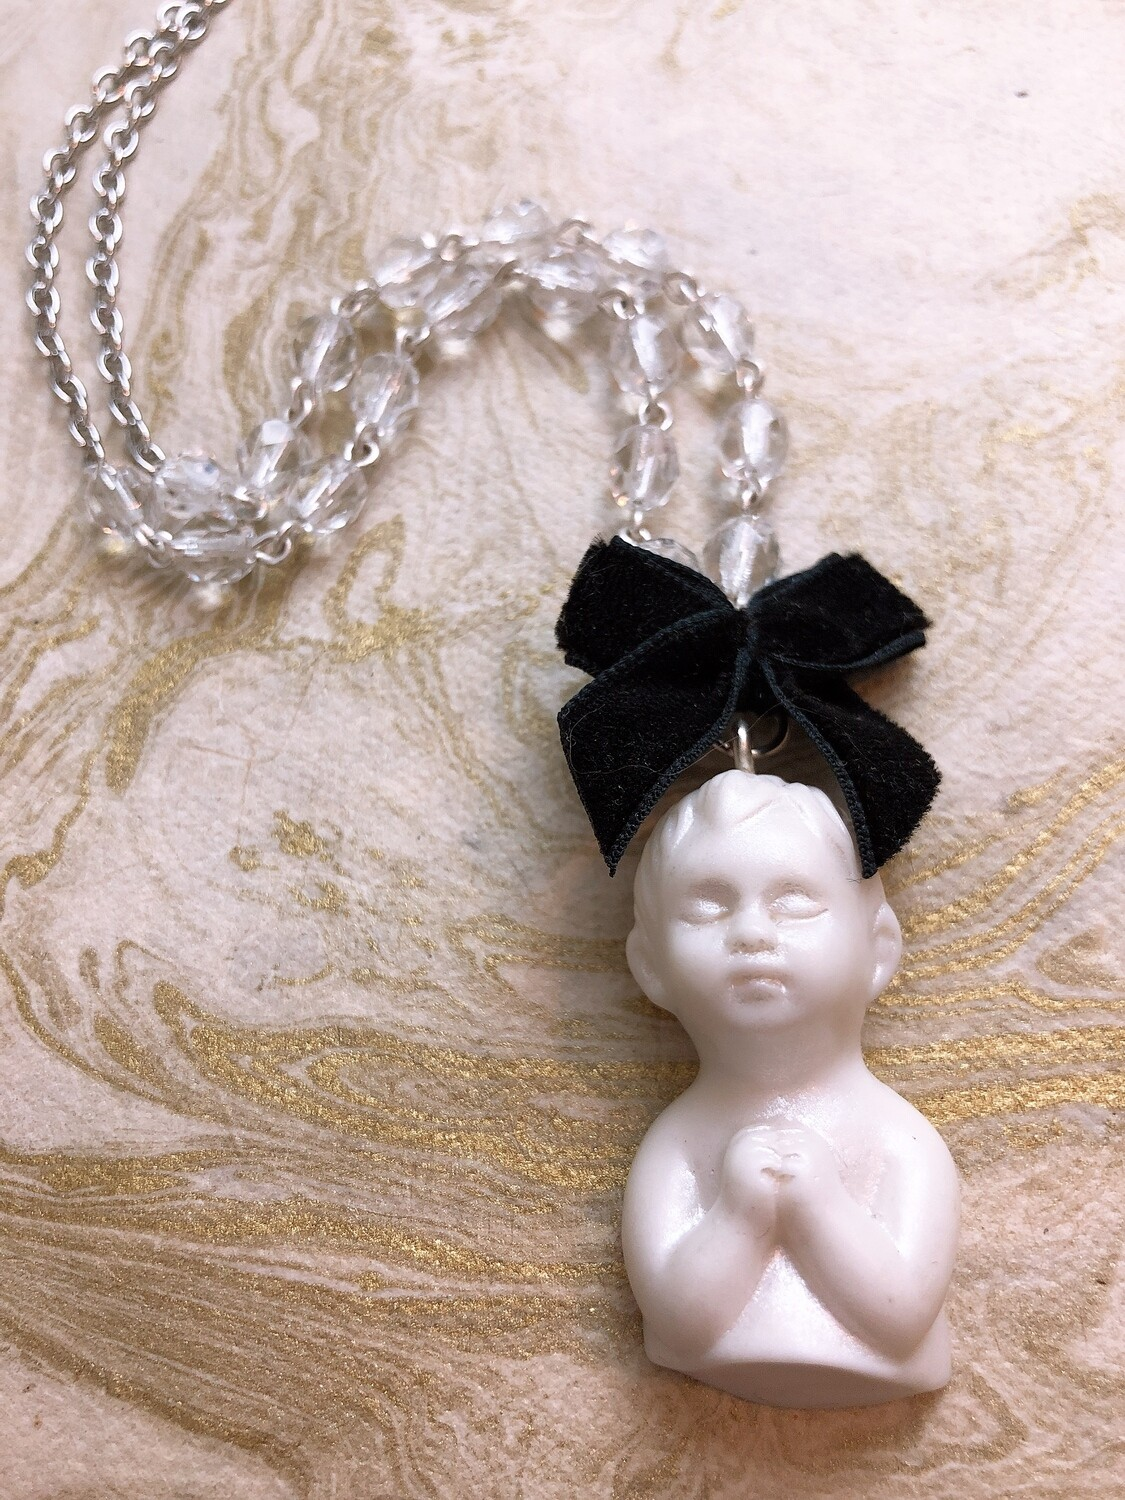 doll parts necklace (praying)